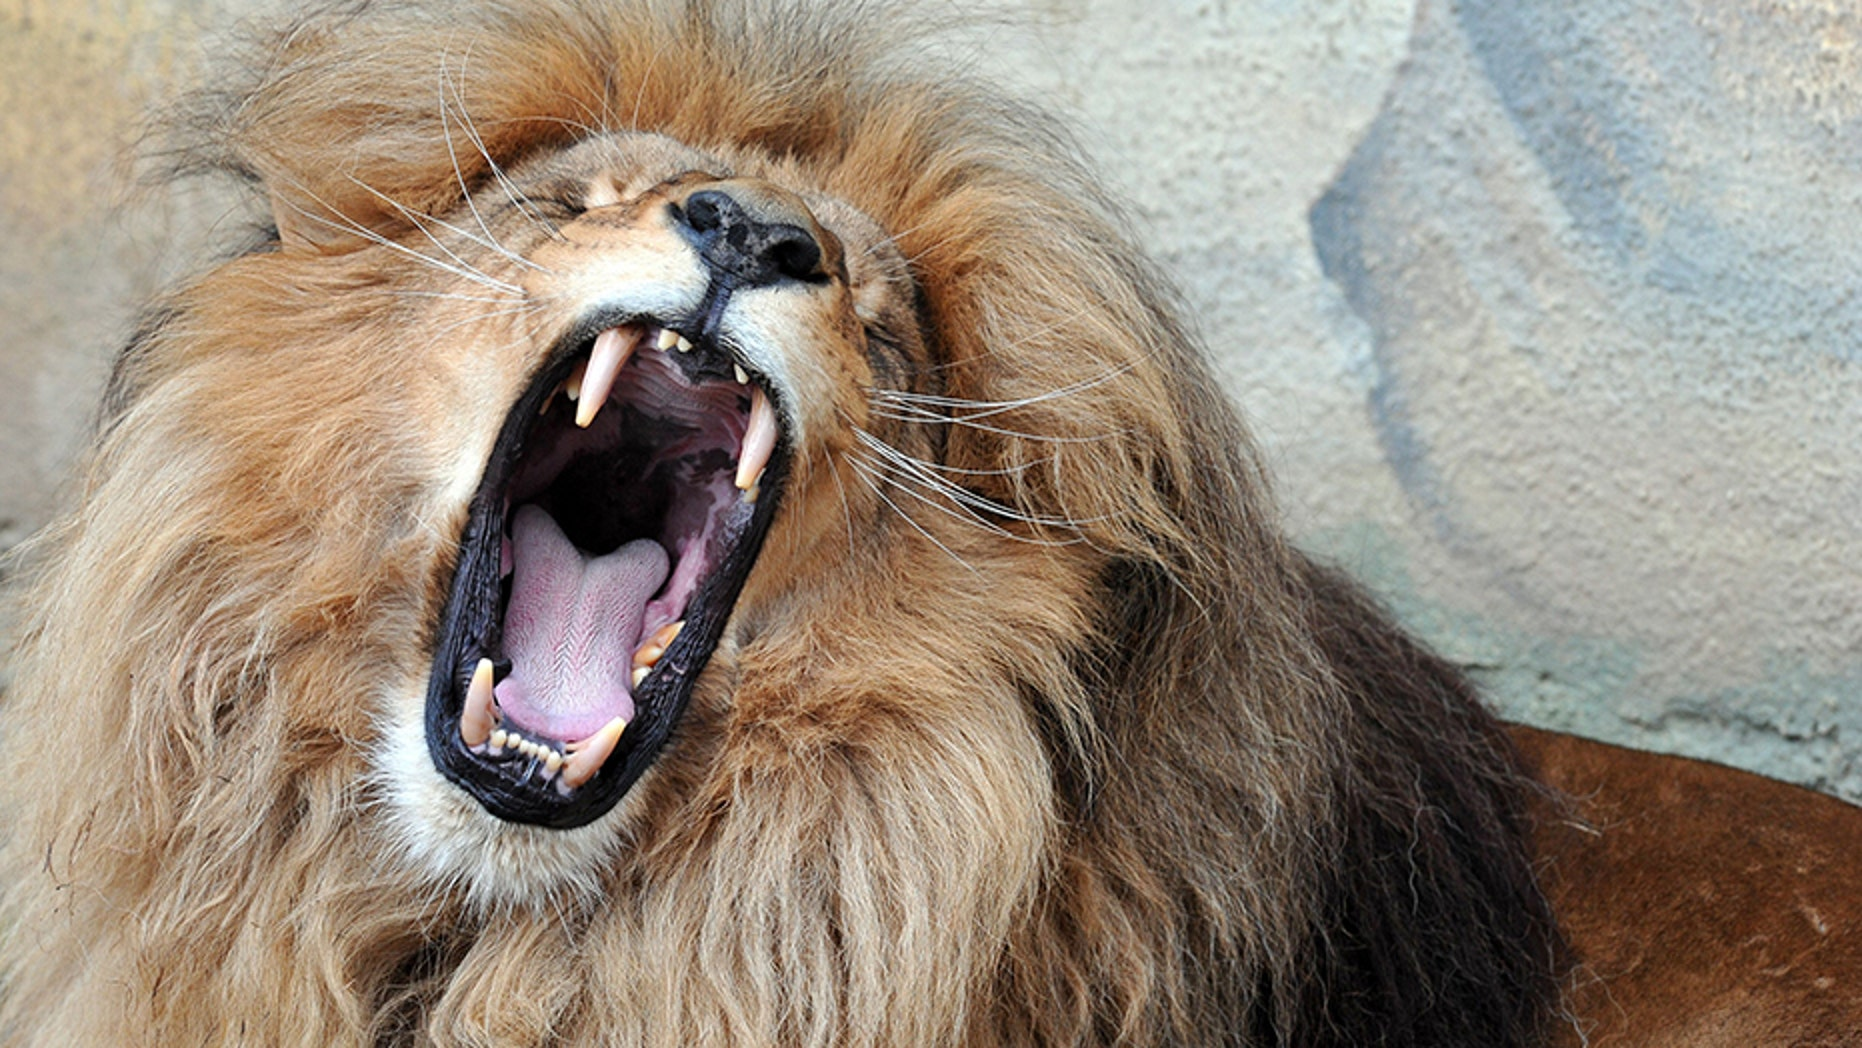 Male lions generally start to get manes starting around the age of one or two, a sign of sexual maturity.